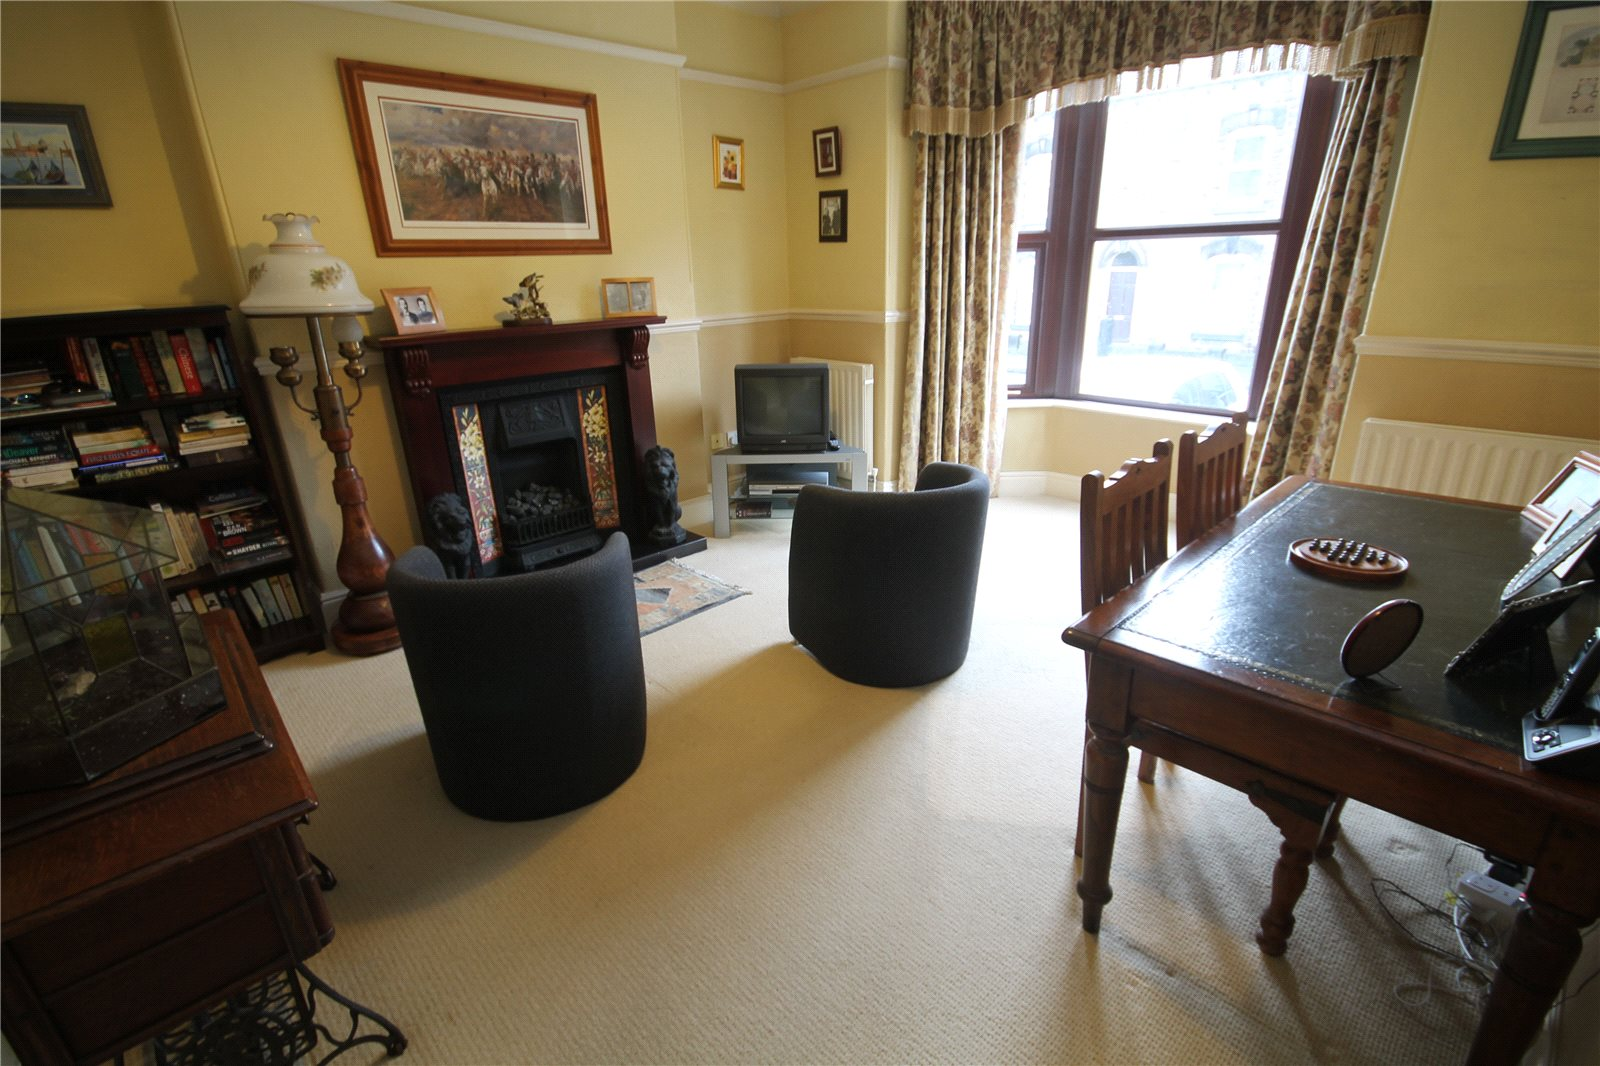 Whitegates Barnsley 5 Bedroom House For Sale In Hopwood